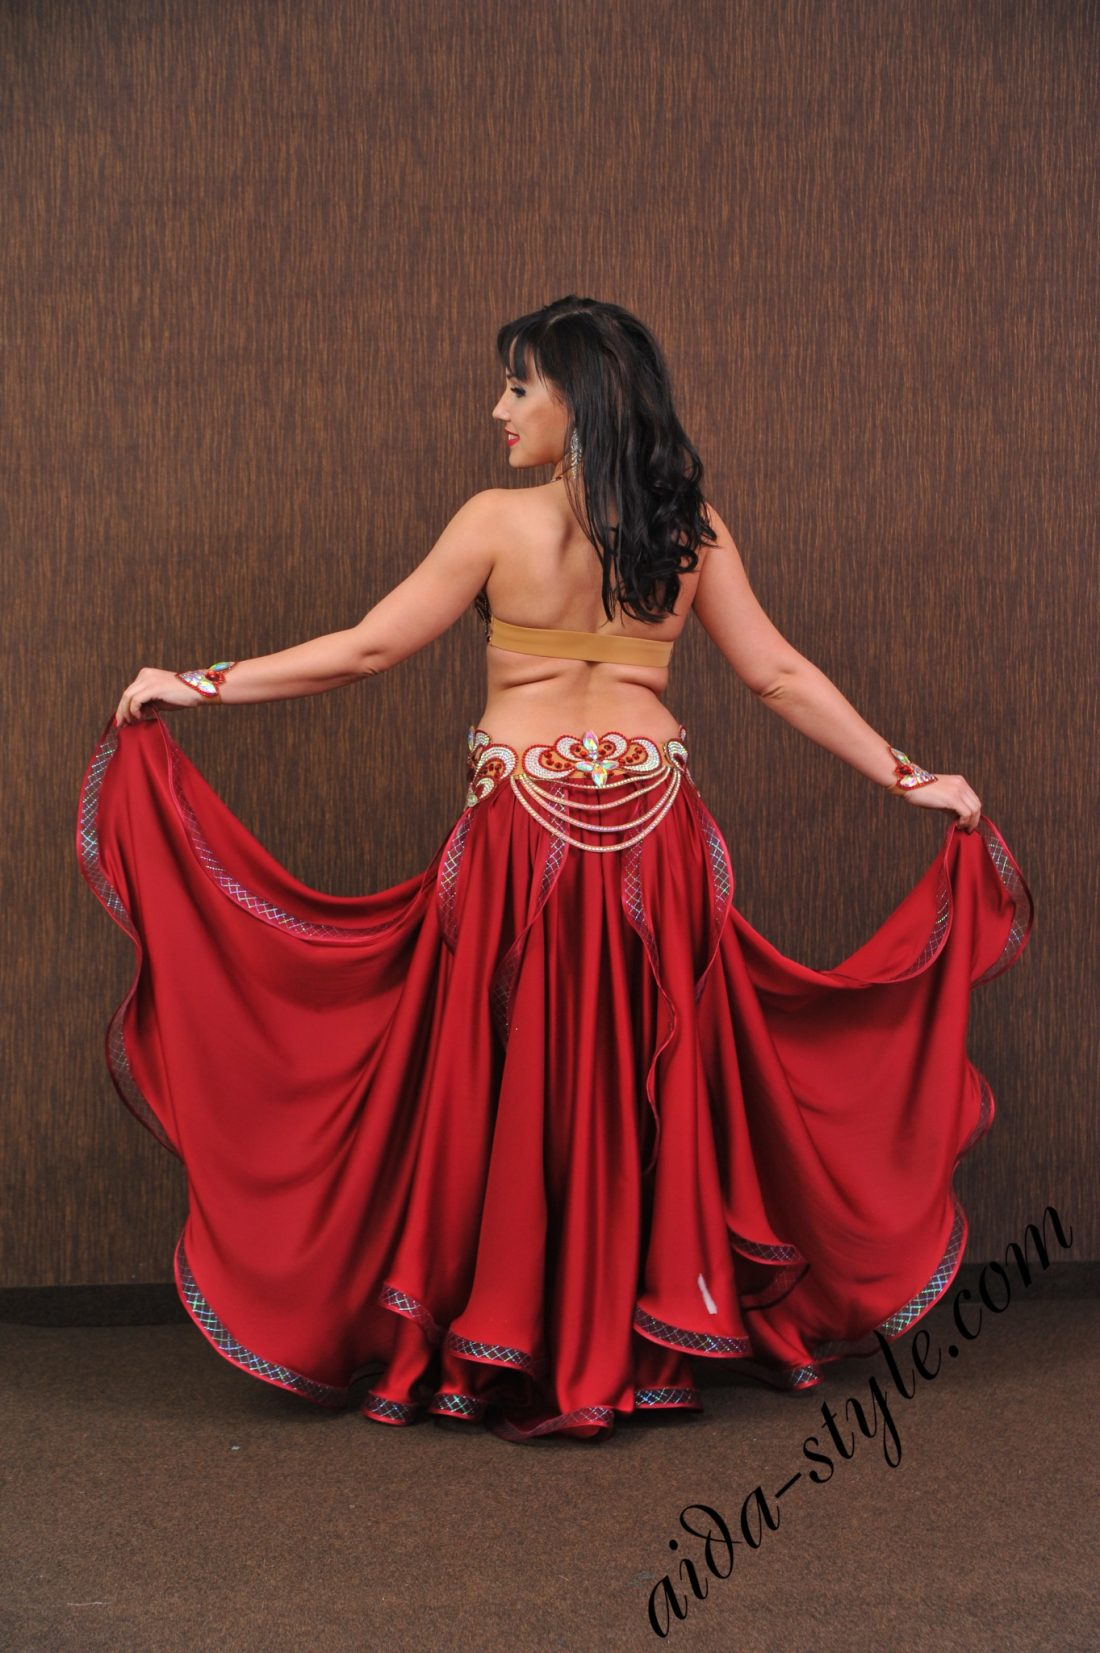 bordo designer belly dance costume by Aida